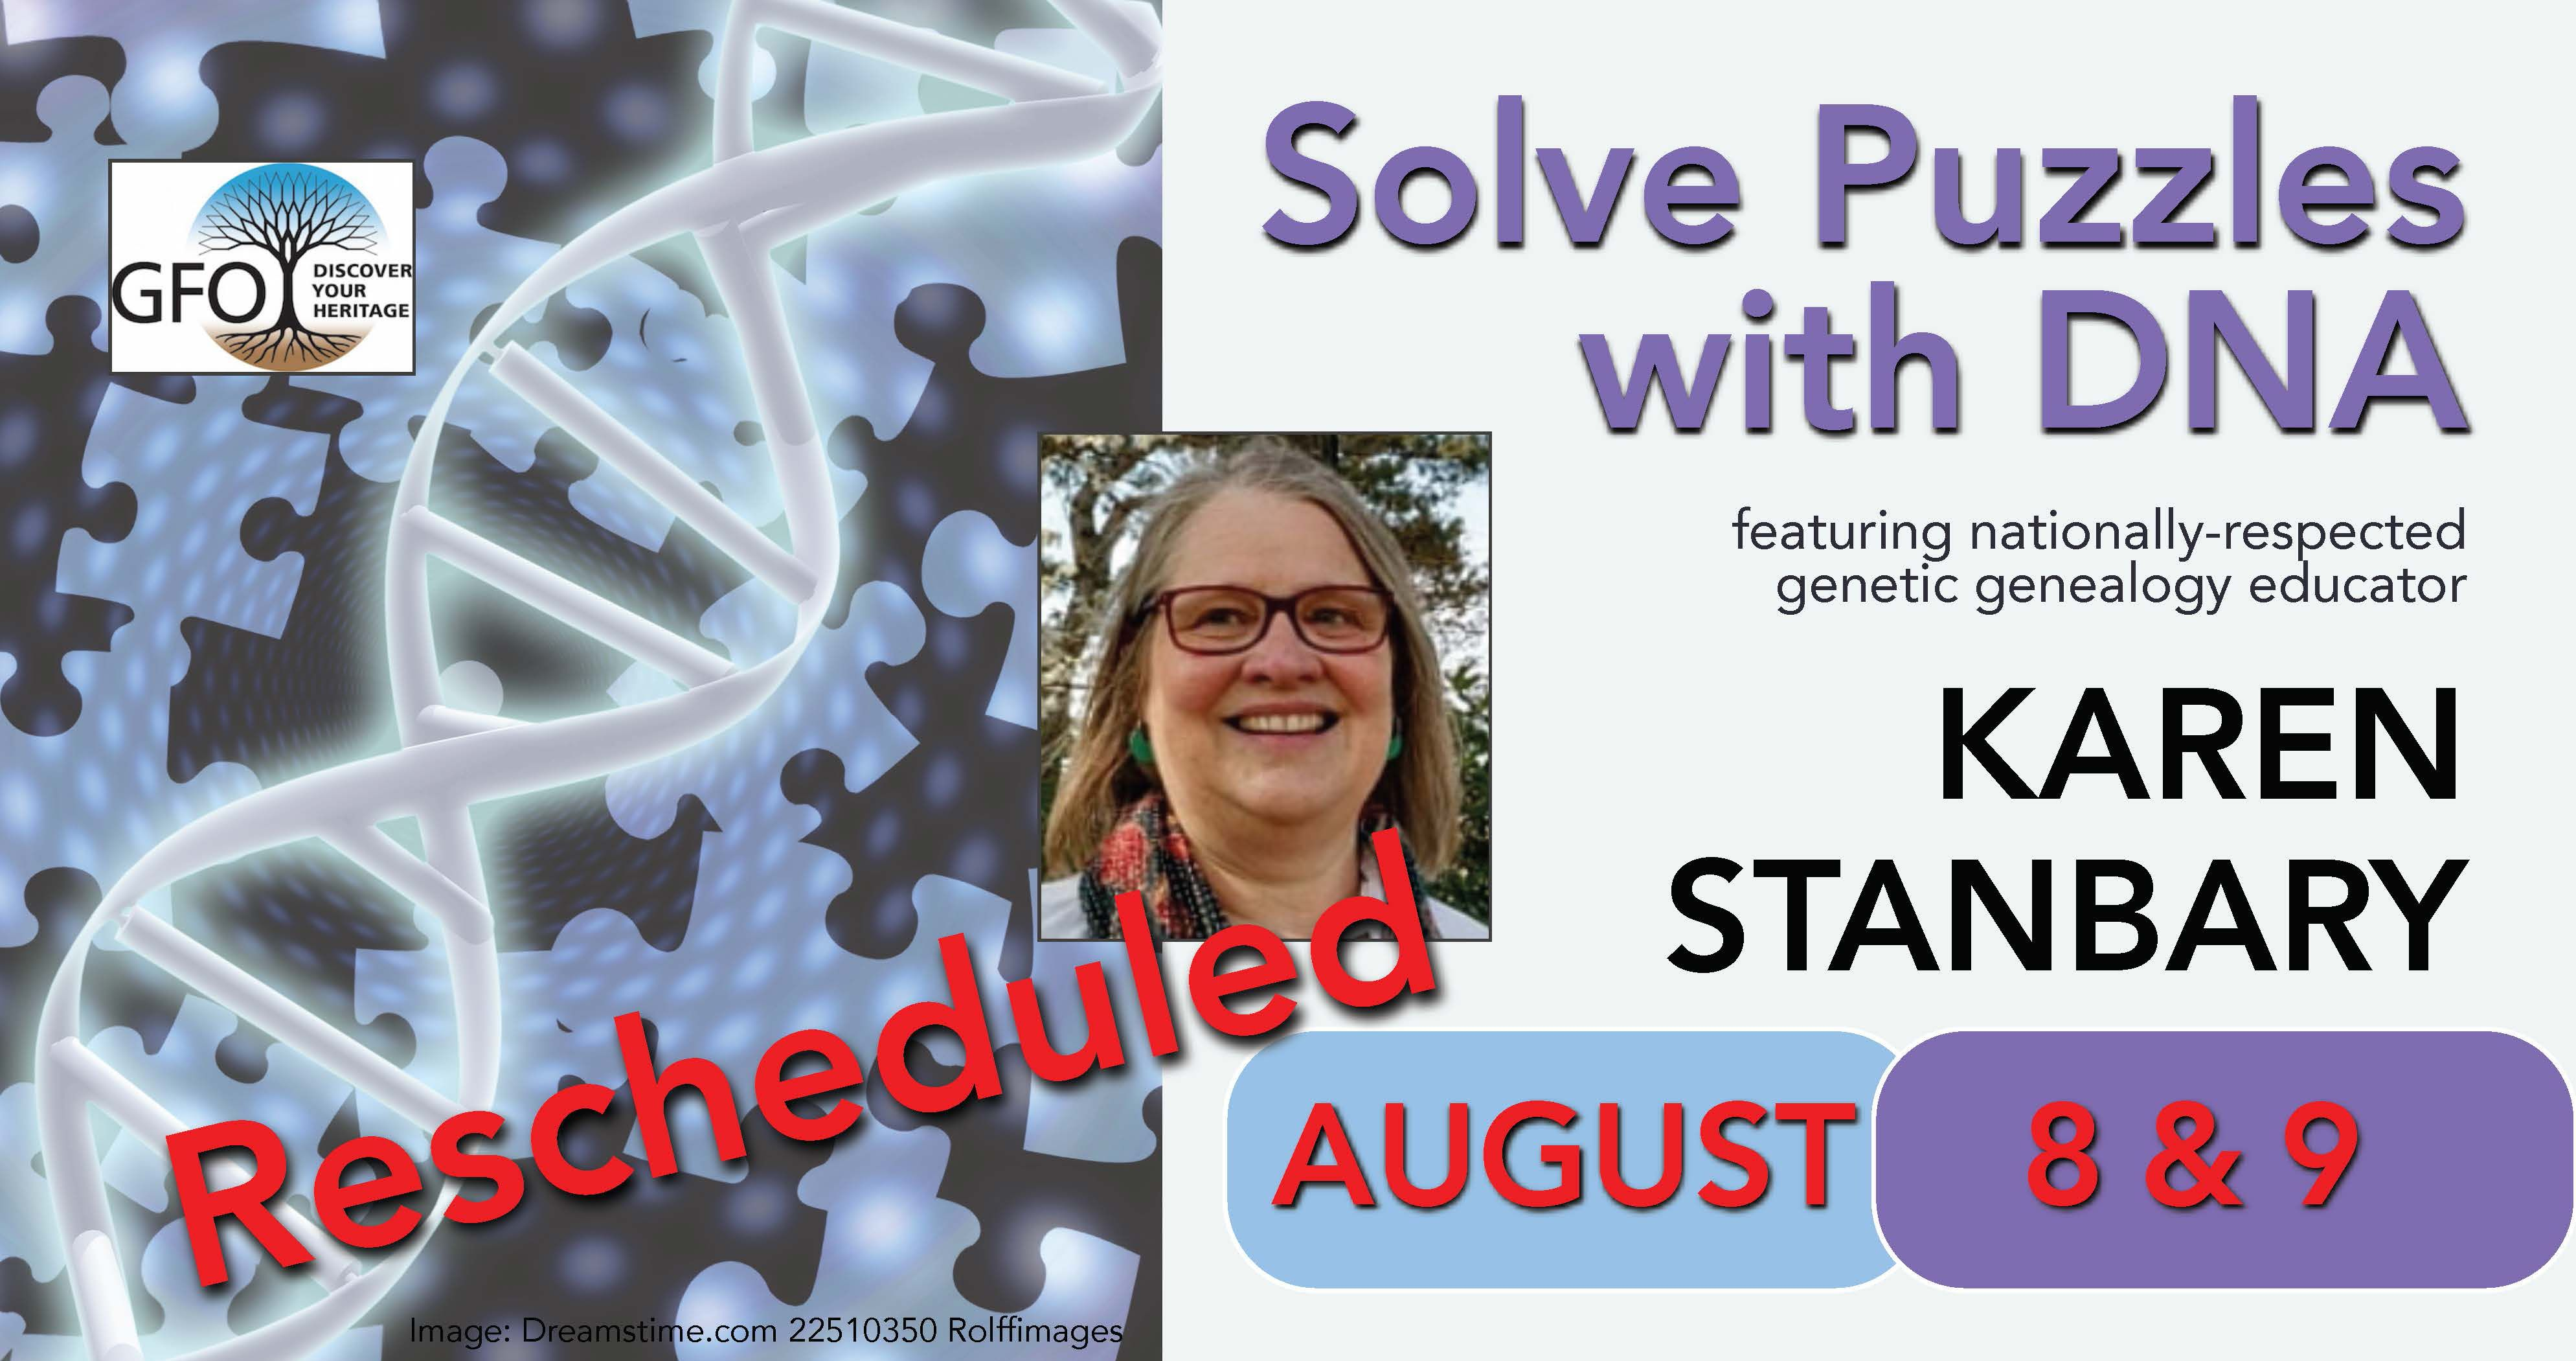 Summer Seminar: Solve Puzzles with DNA